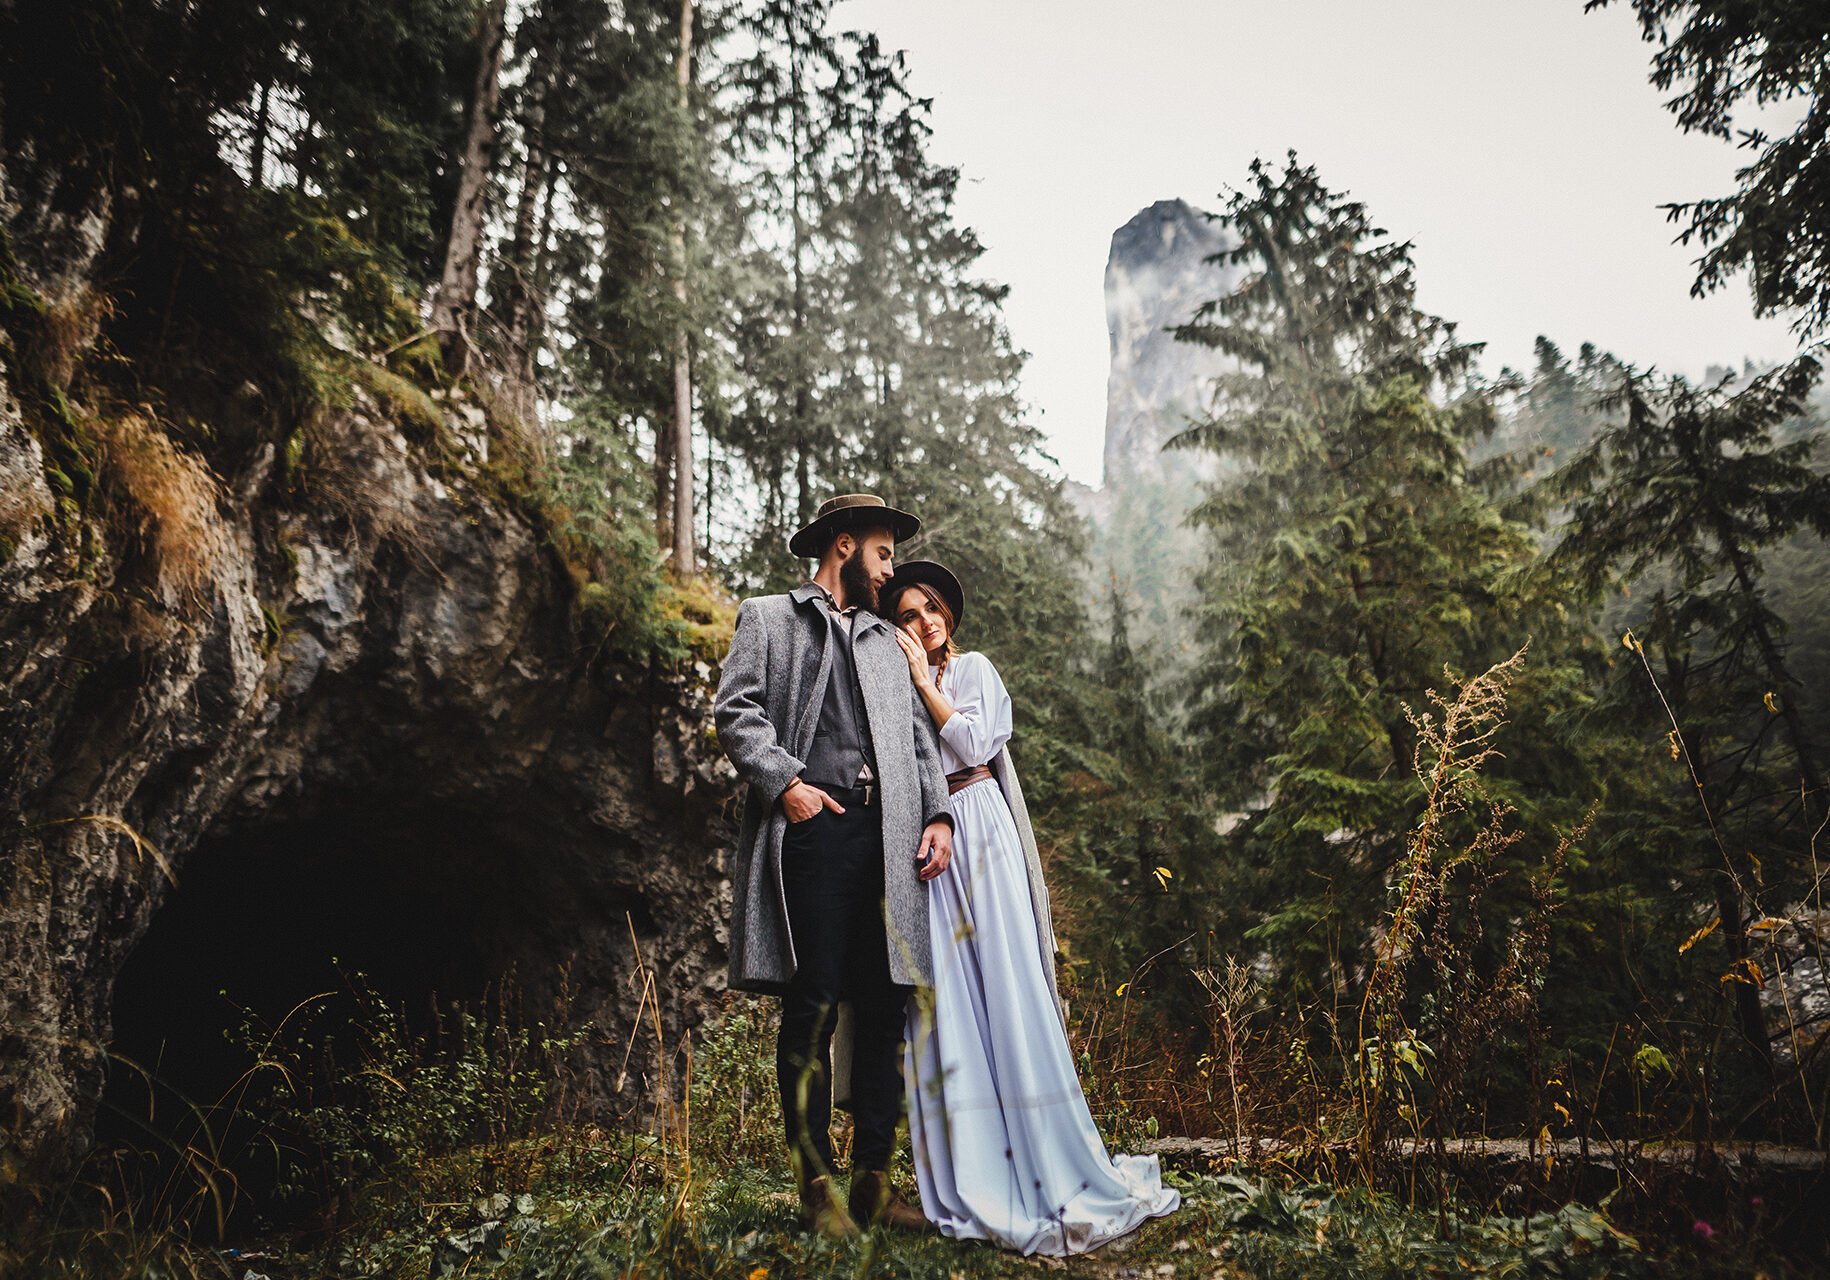 Beautiful loving couple going for a walk in a misty forest and cave